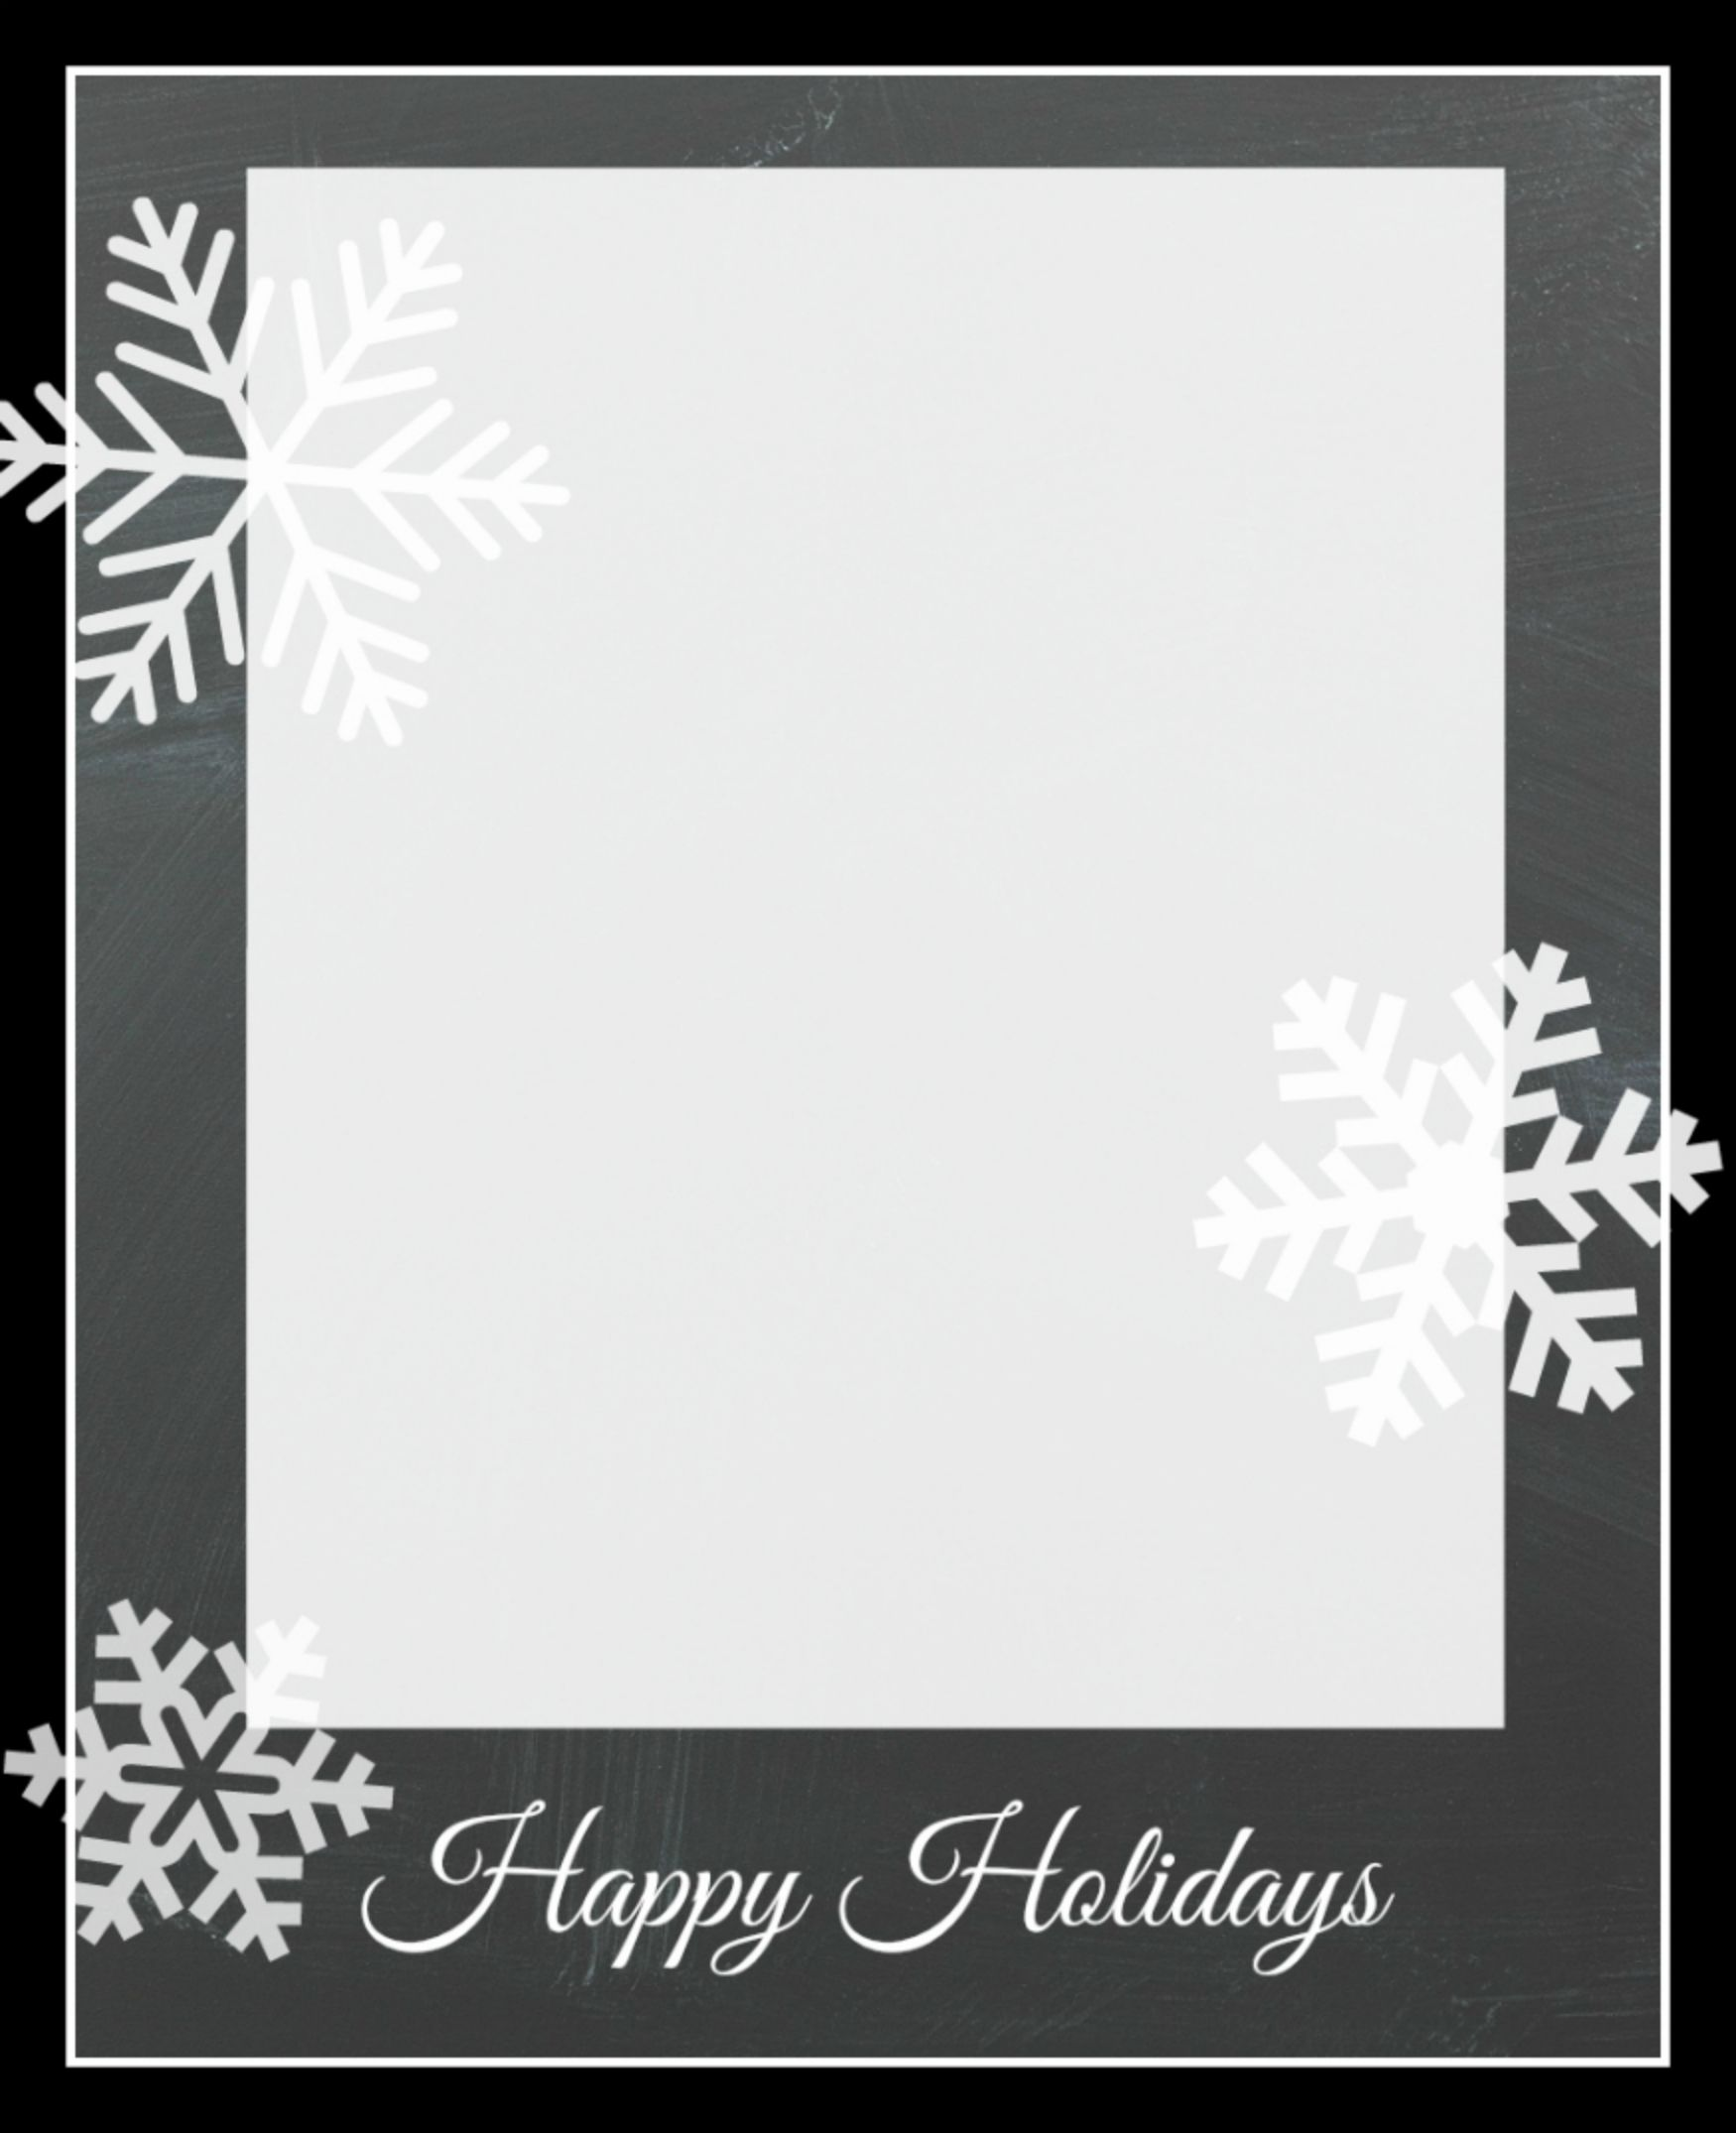 Free Christmas Card Templates Christmas Photo Card Template Free Christmas Photo Card Templates Christmas Card Template